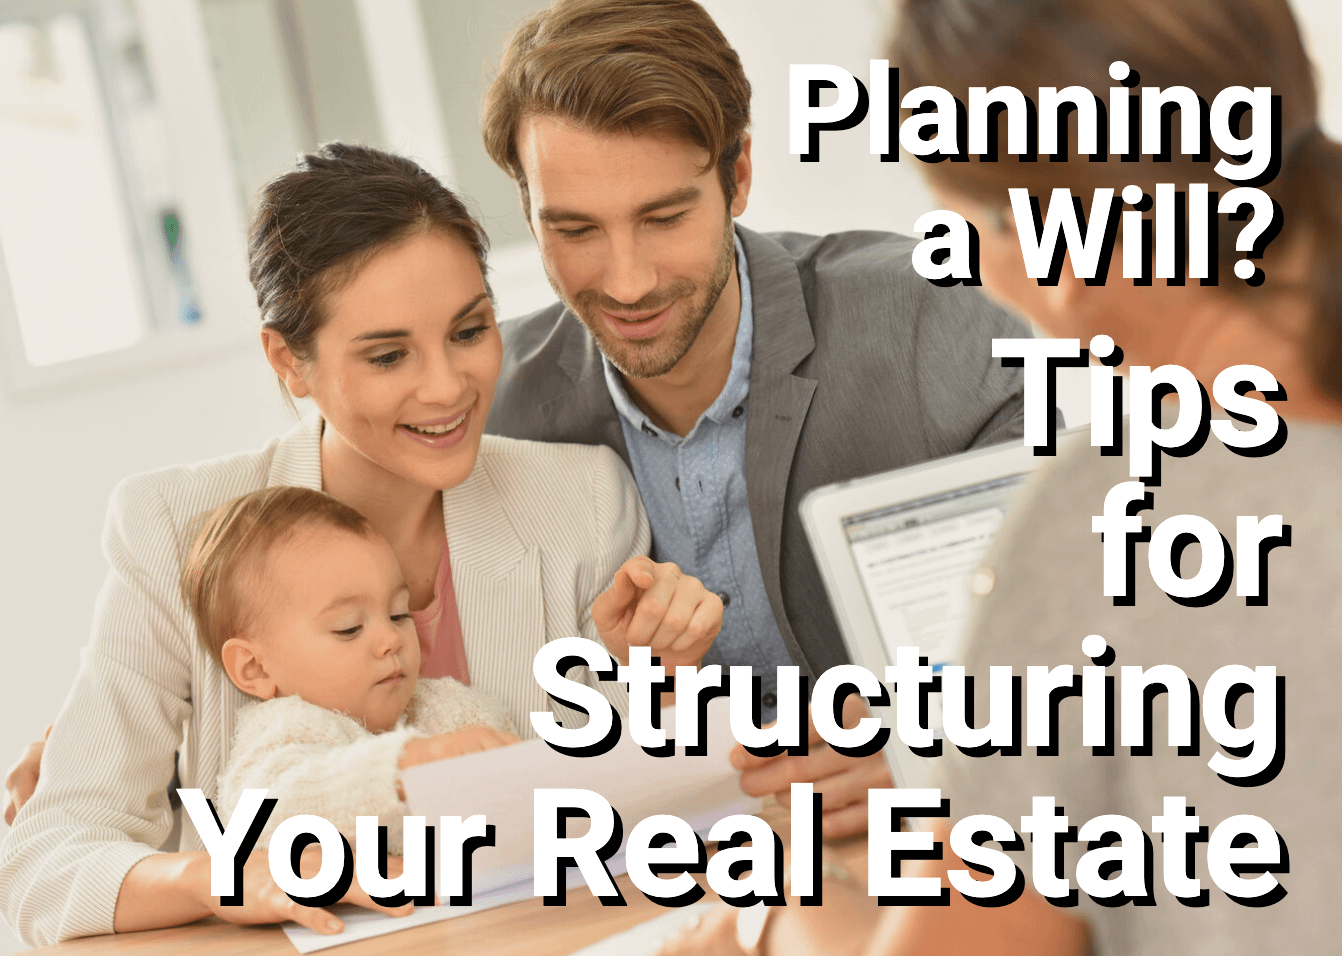 Family meeting with estate planner